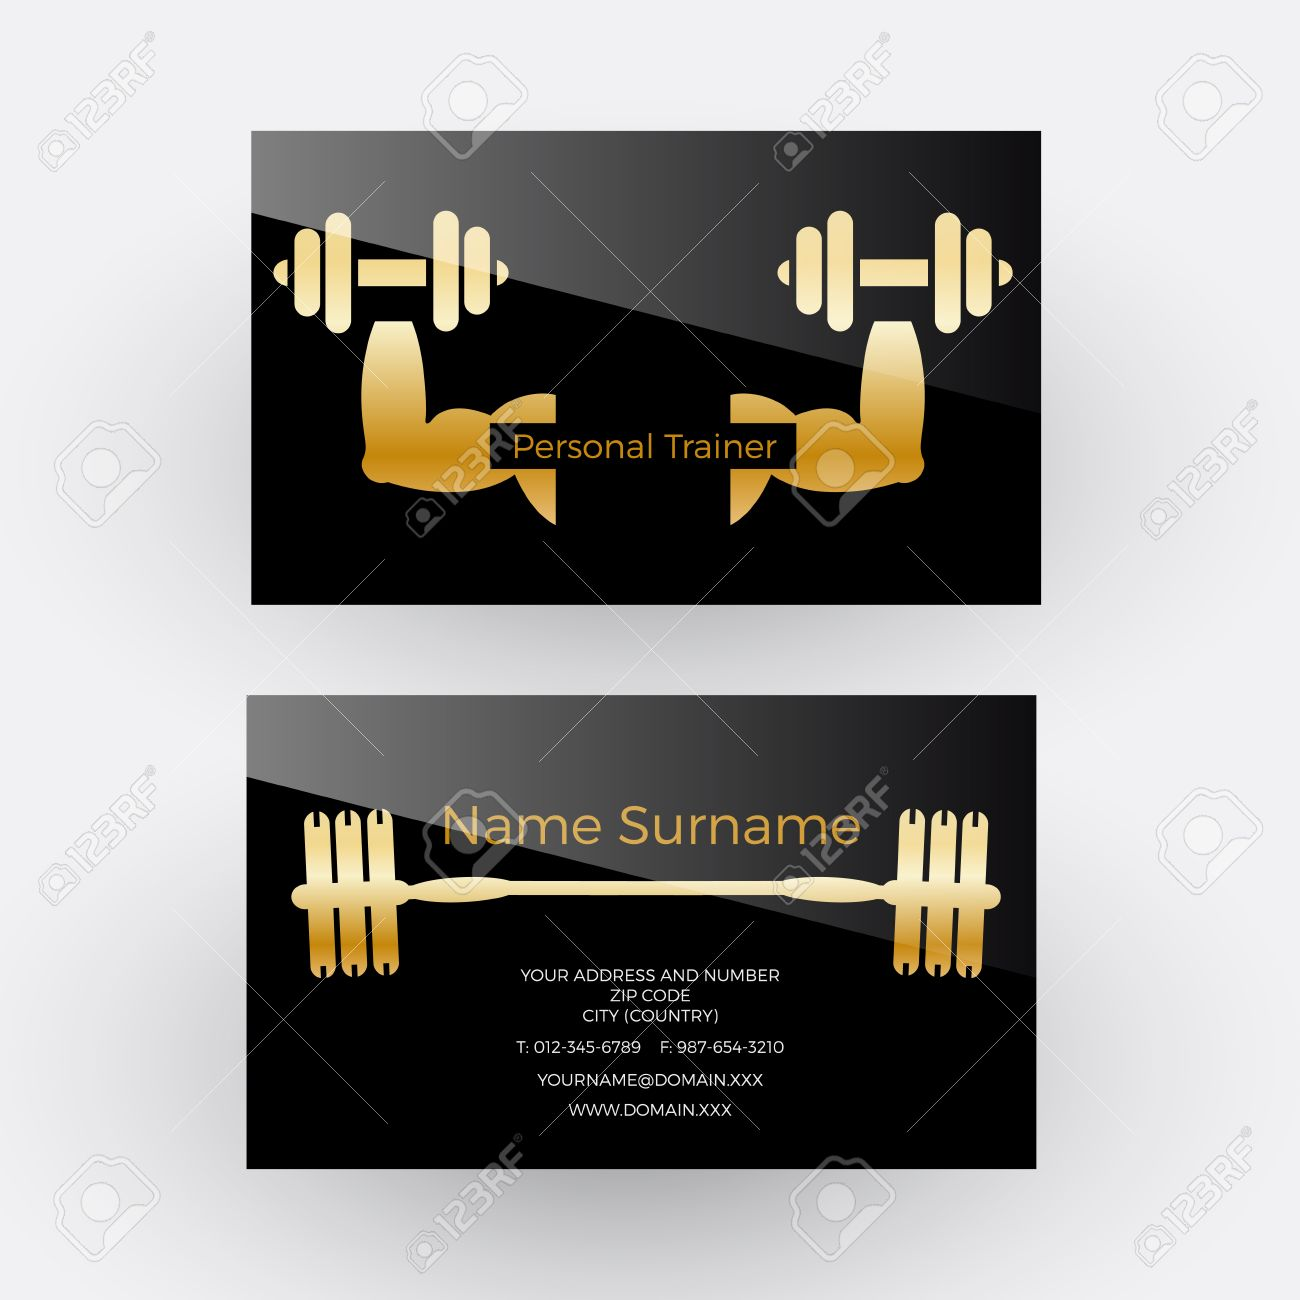 Fitness trainer business cards images business card template personal training business cards gallery business card template vector abstract sign personal trainer business card royalty wajeb Image collections